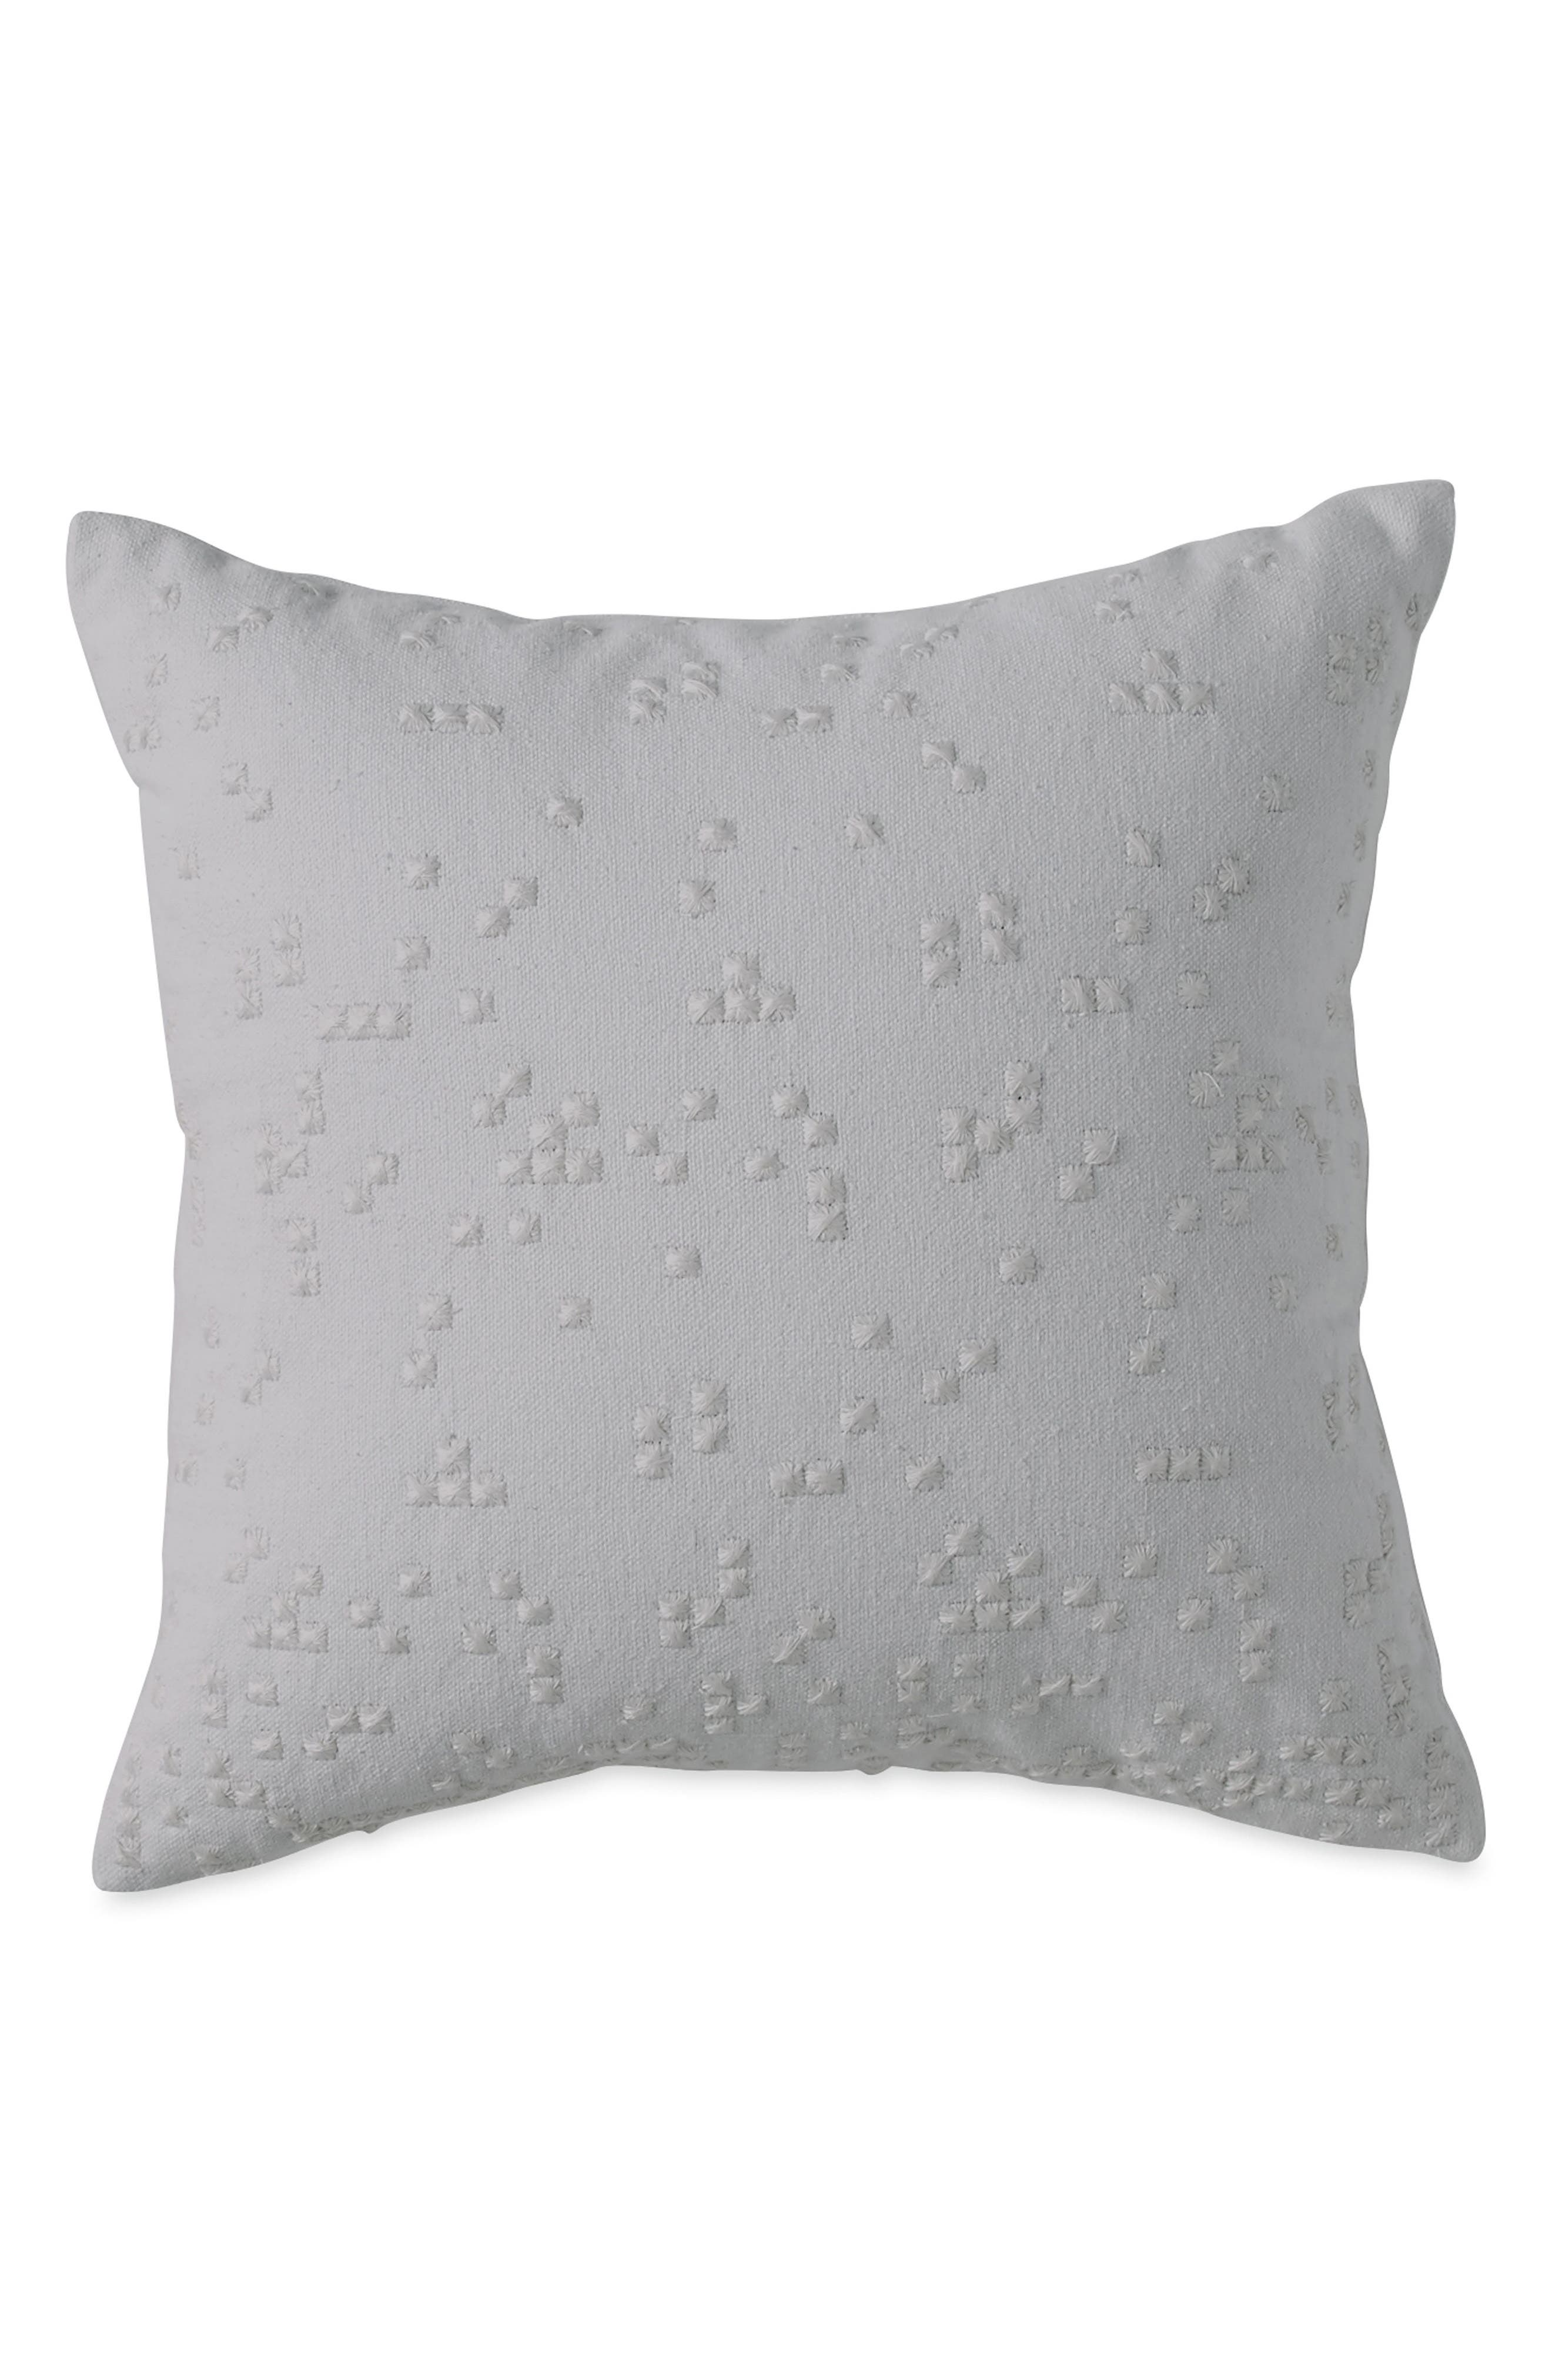 DKNY Embroidered Accent Pillow, Main, color, 020